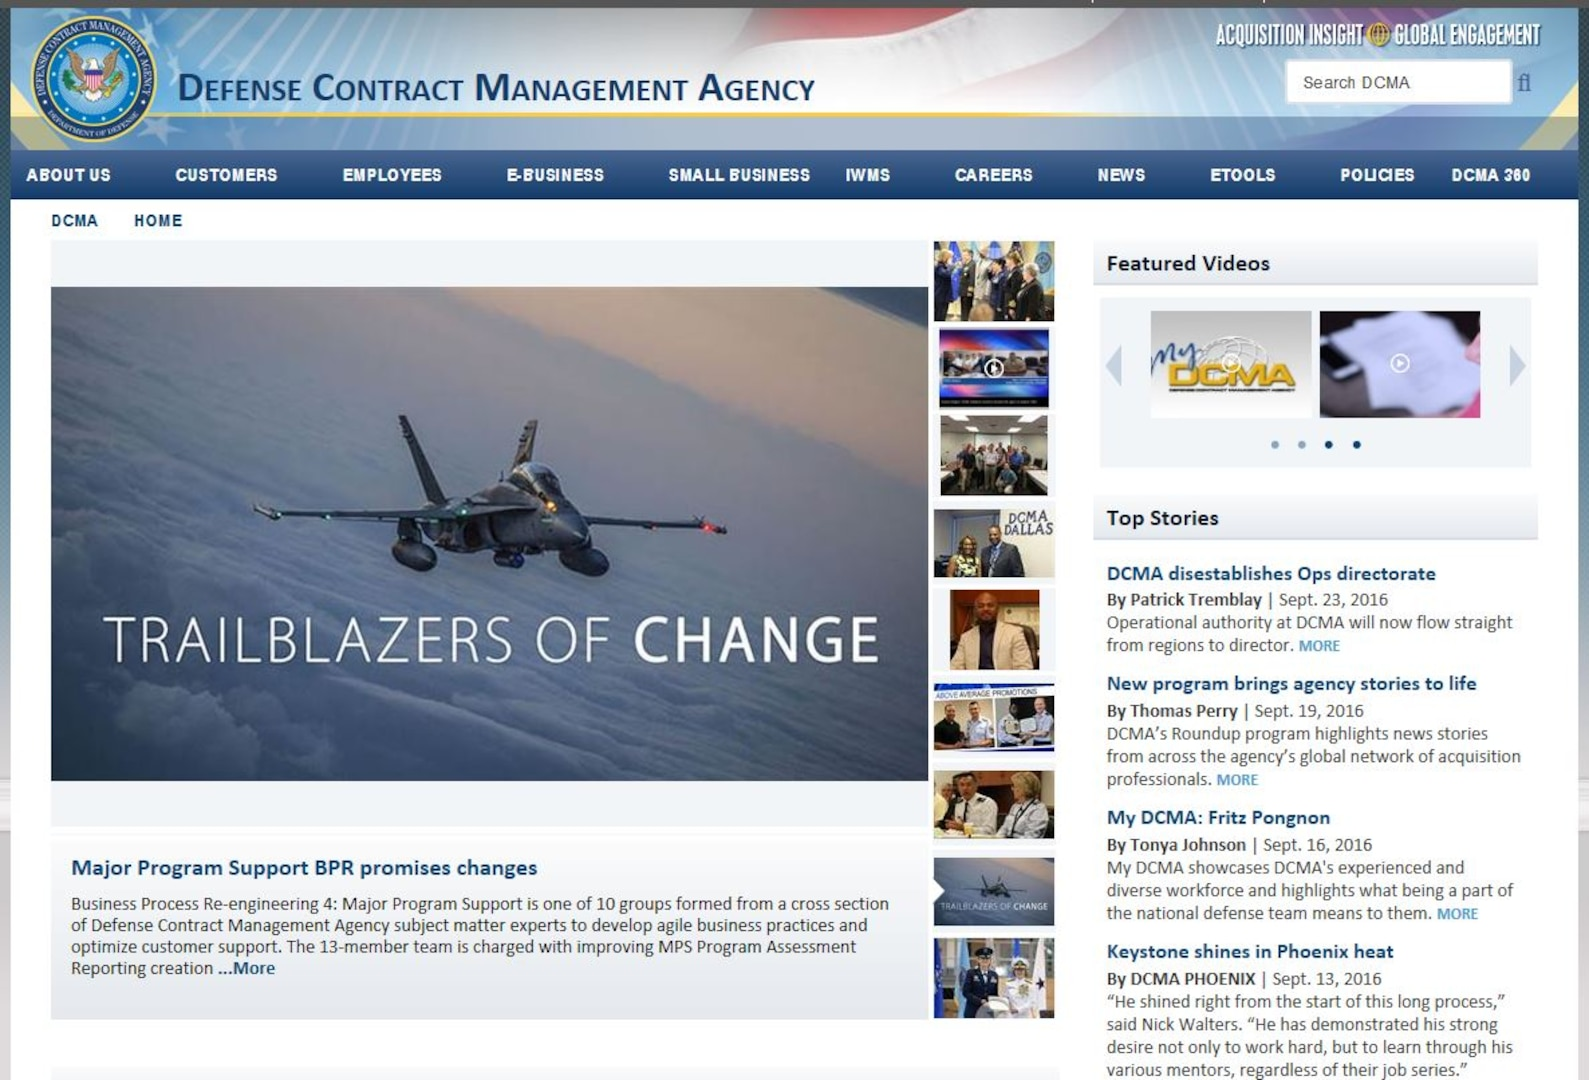 The Defense Contract Management Agency has a new public website, designed around a new content management system that allows for faster updating while also bringing the look and feel more closely in line with other Department of Defense sites.